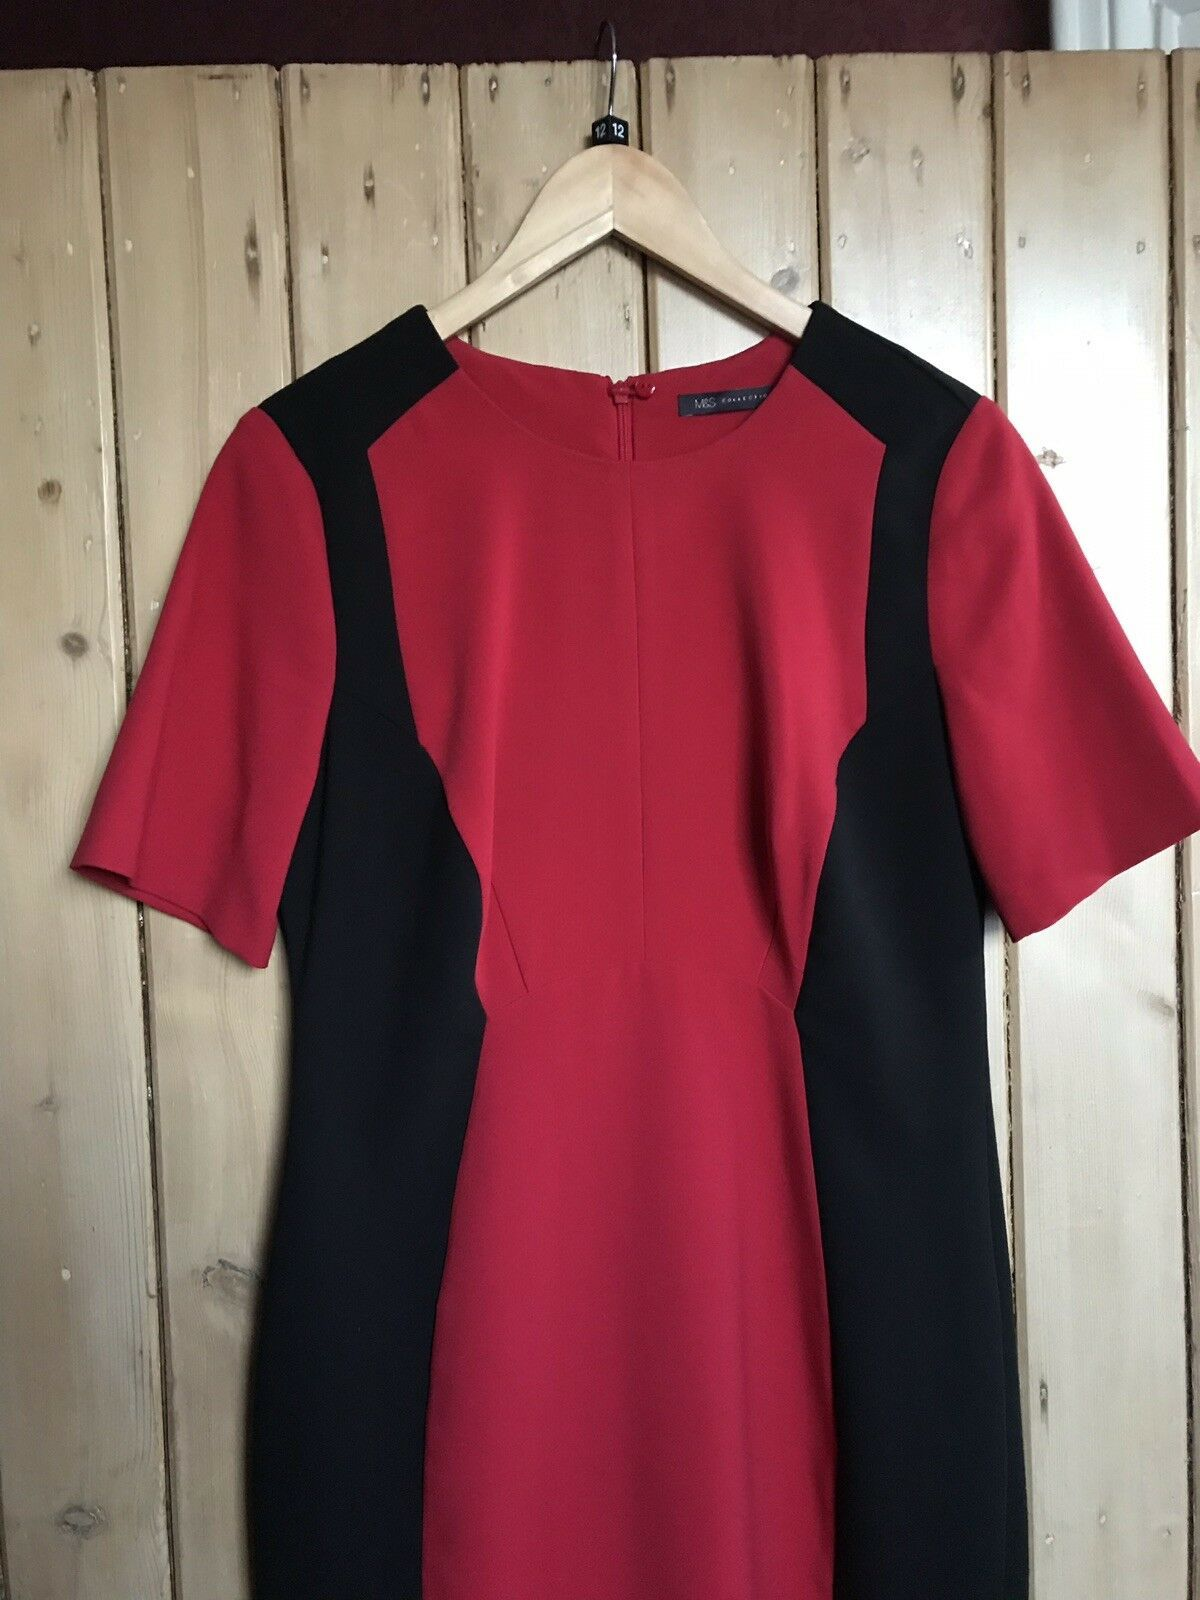 66a1fb386a7 M S Collection Ladies Red   Black Colour Block Fitted Lined Dress Size 12  Work